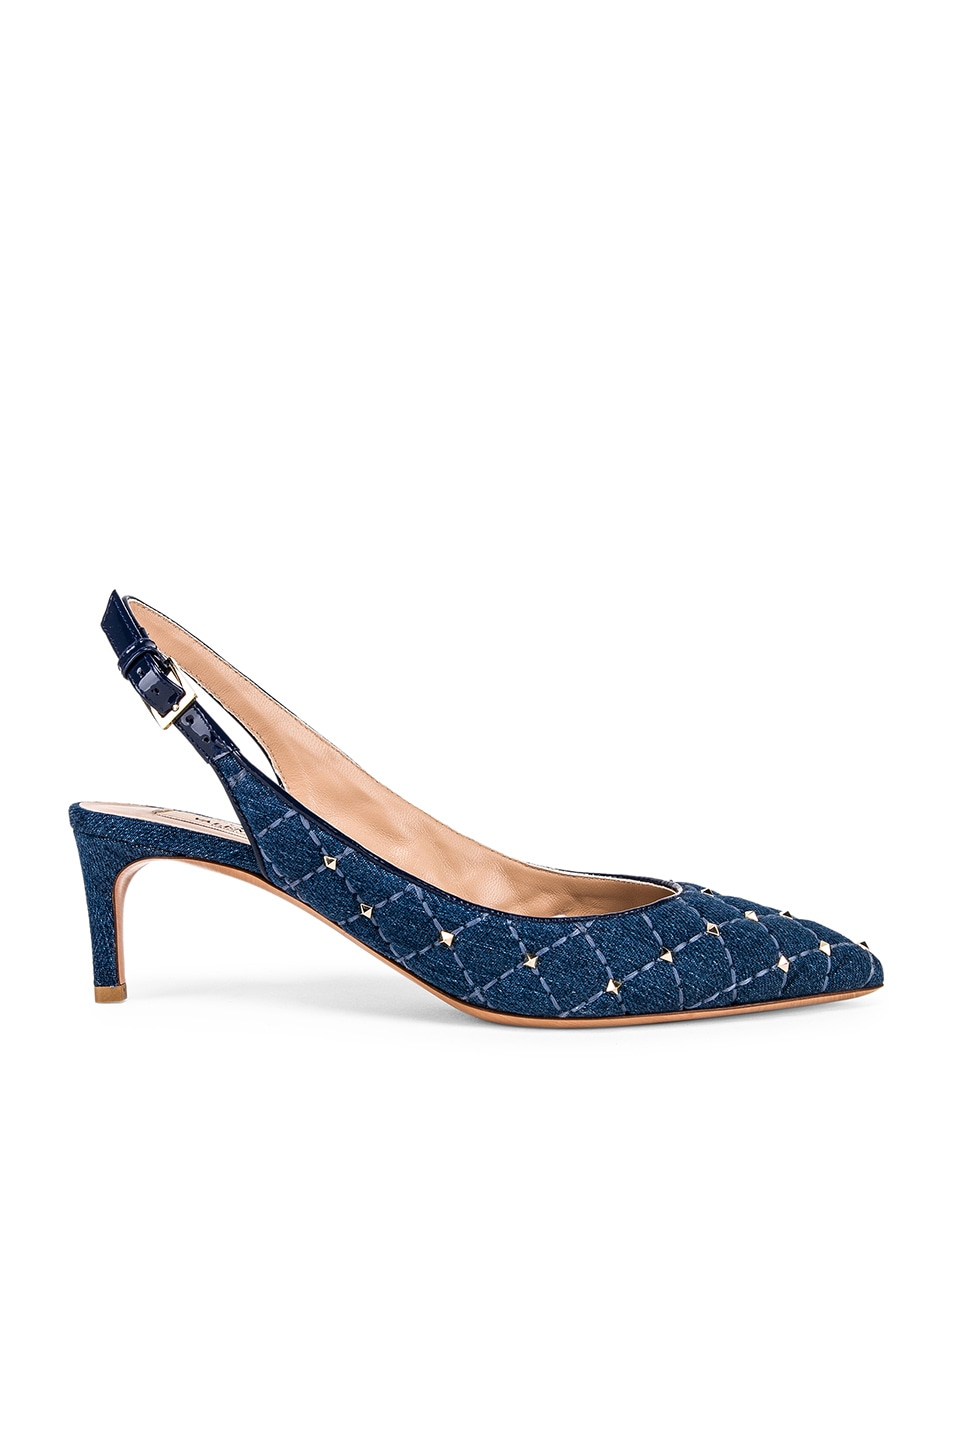 low-cost Valentino Rockstud Spike Sling Back Heels Light Denim